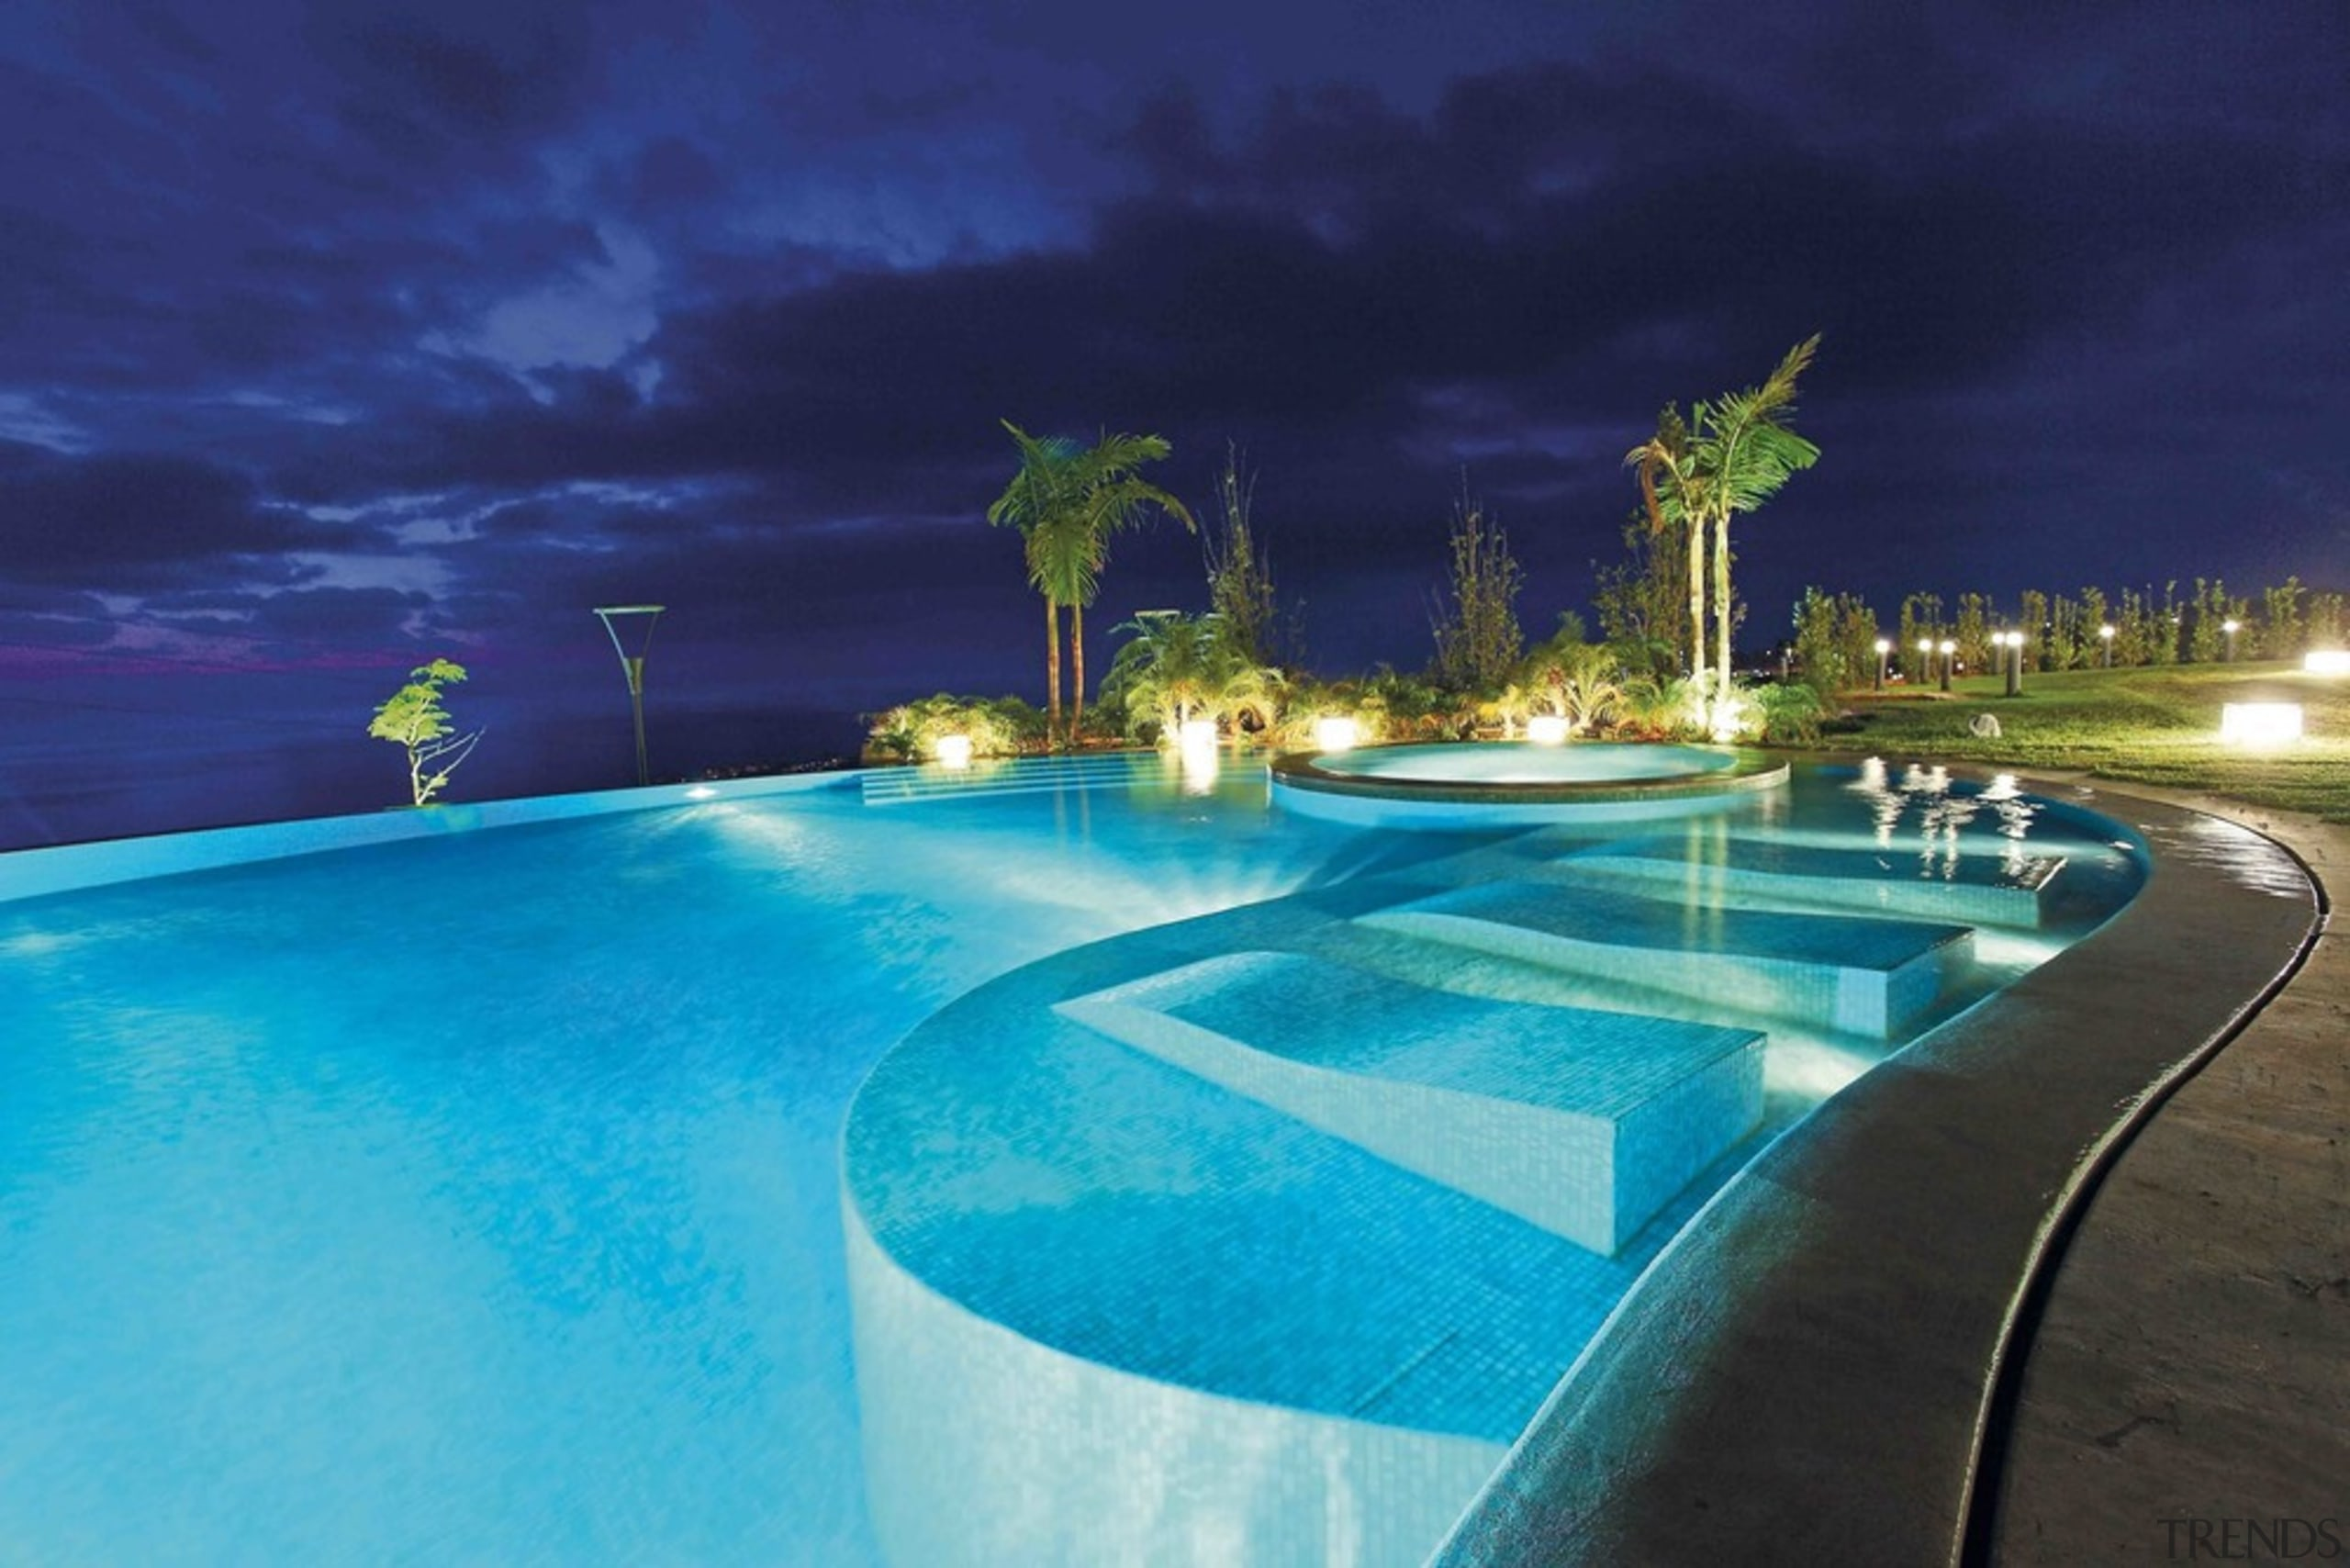 This pool house is sense-ational - architecture   architecture, building, estate, hotel, house, leisure, lighting, night, property, real estate, resort, resort town, sky, spa town, swimming pool, tree, vacation, villa, blue, teal